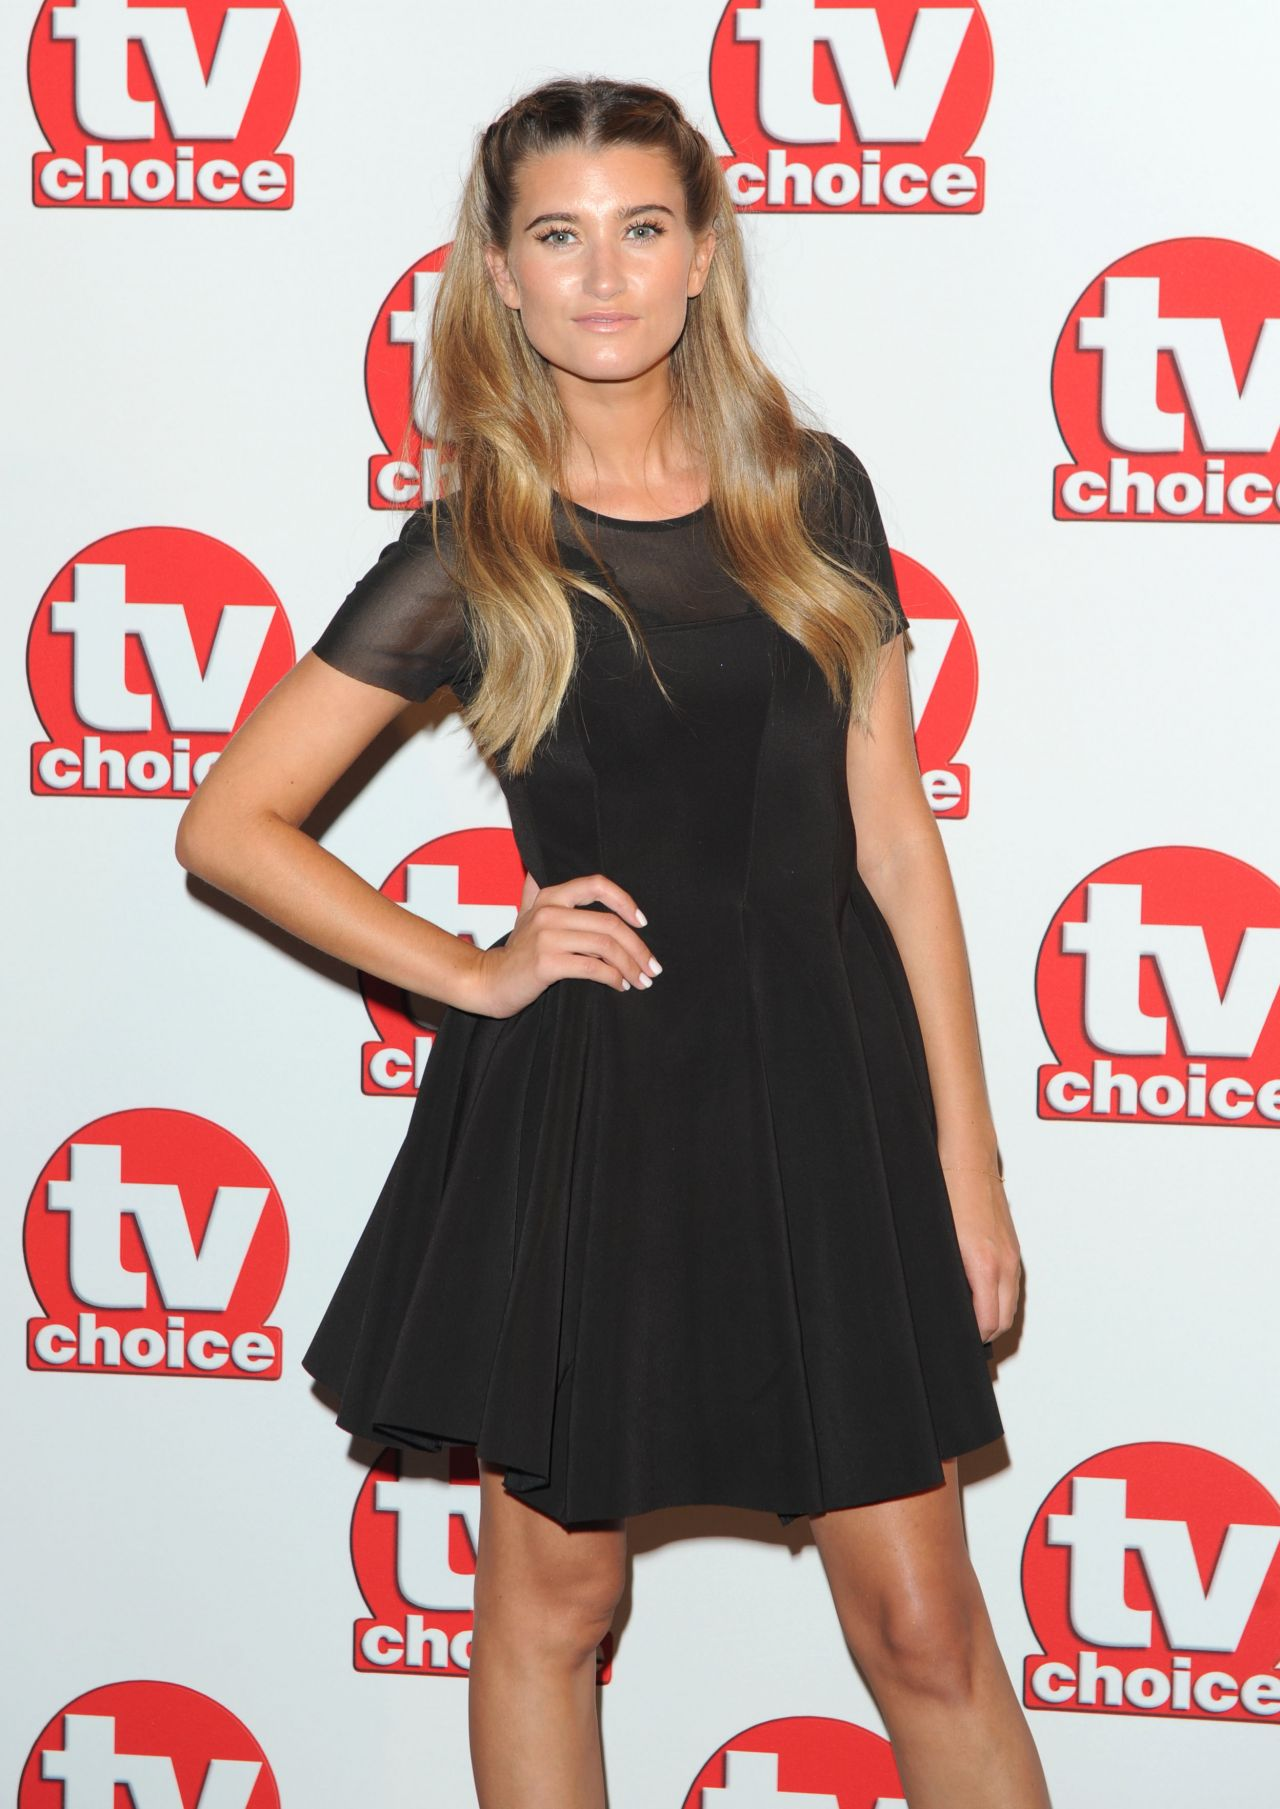 Charley Webb - TV Choice Awards 2014 in London